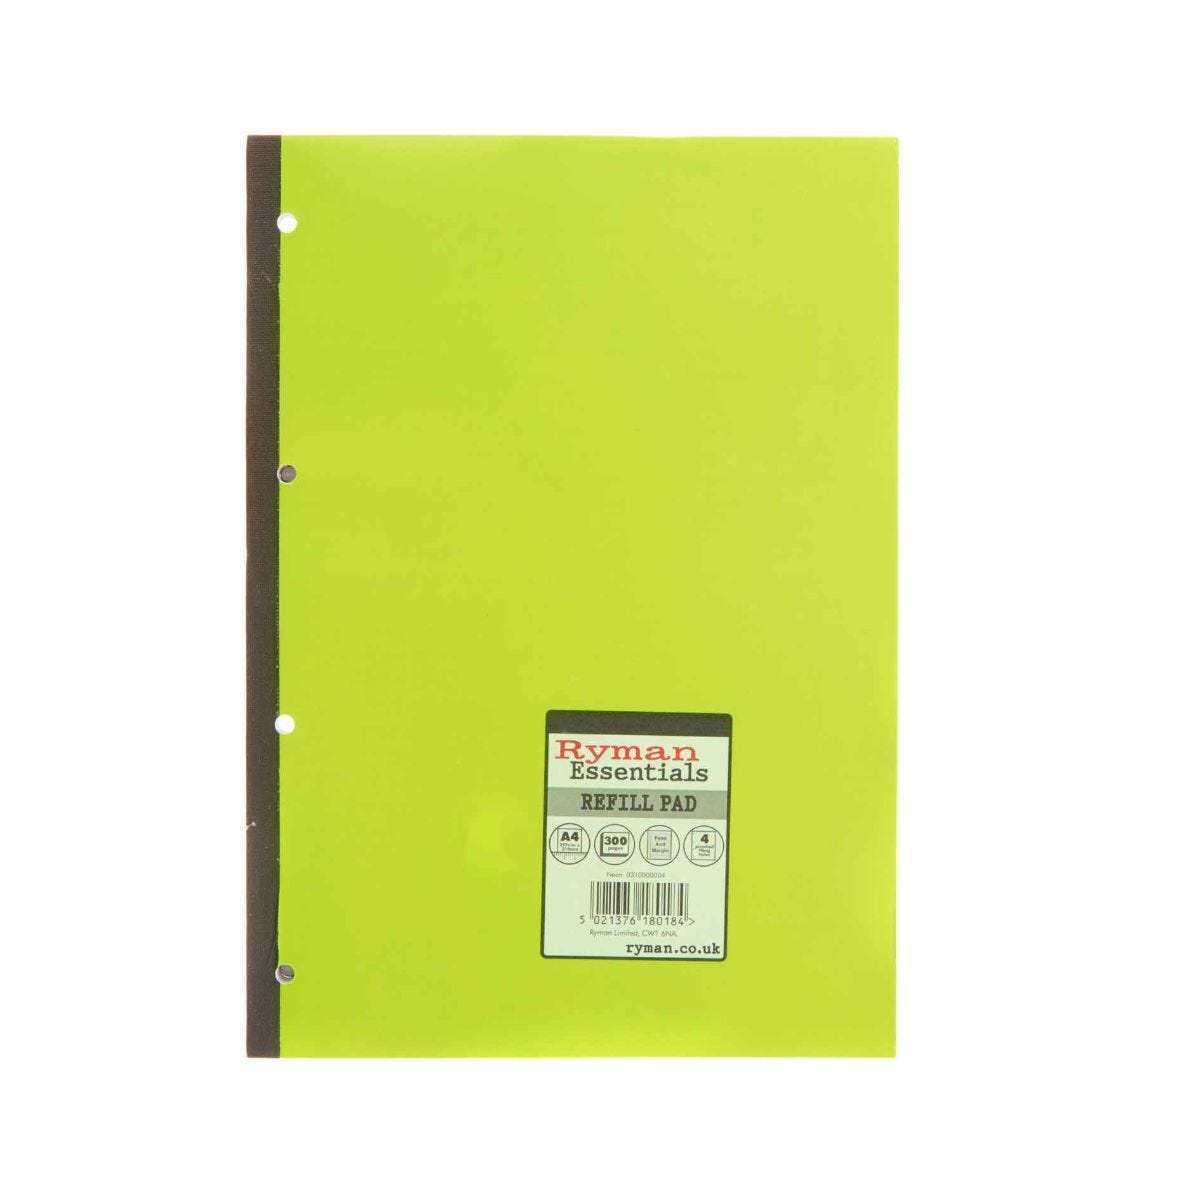 Ryman Essentials Promo Pad A4 300 Page Pack of 6 Green